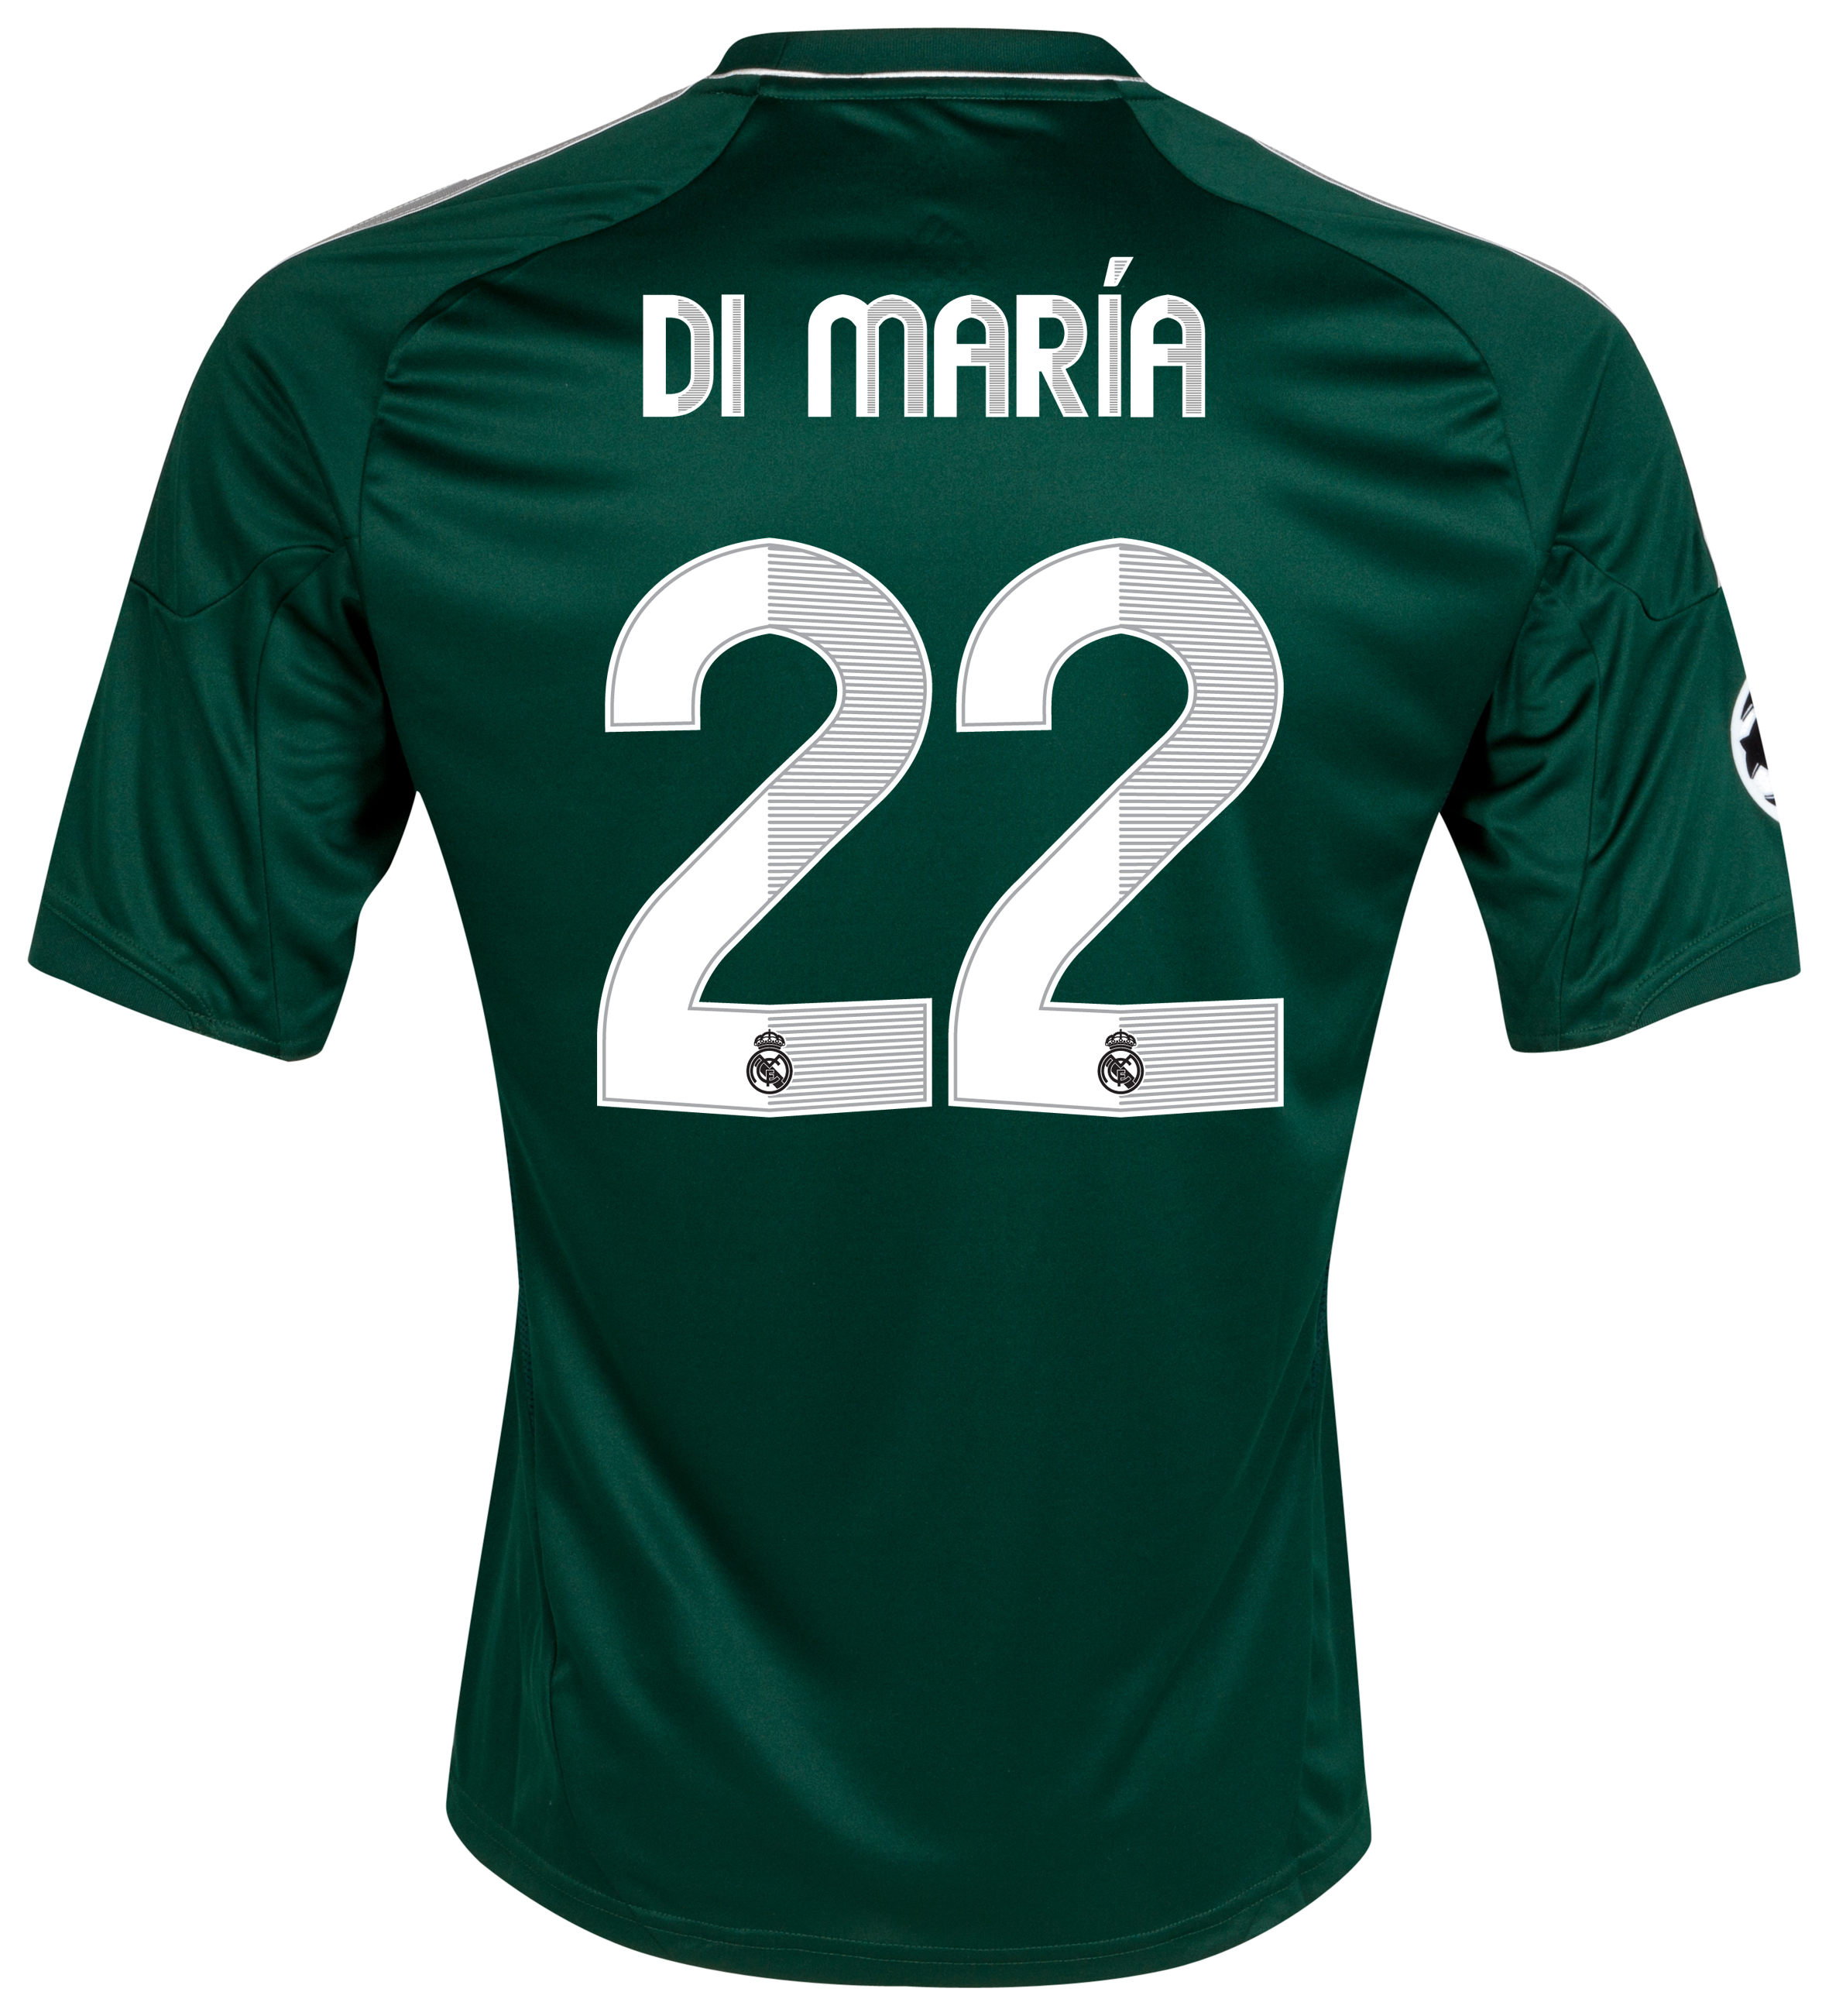 Real Madrid UEFA Champions League Third Shirt 2012/13 - Kids with Di Mara 22 printing